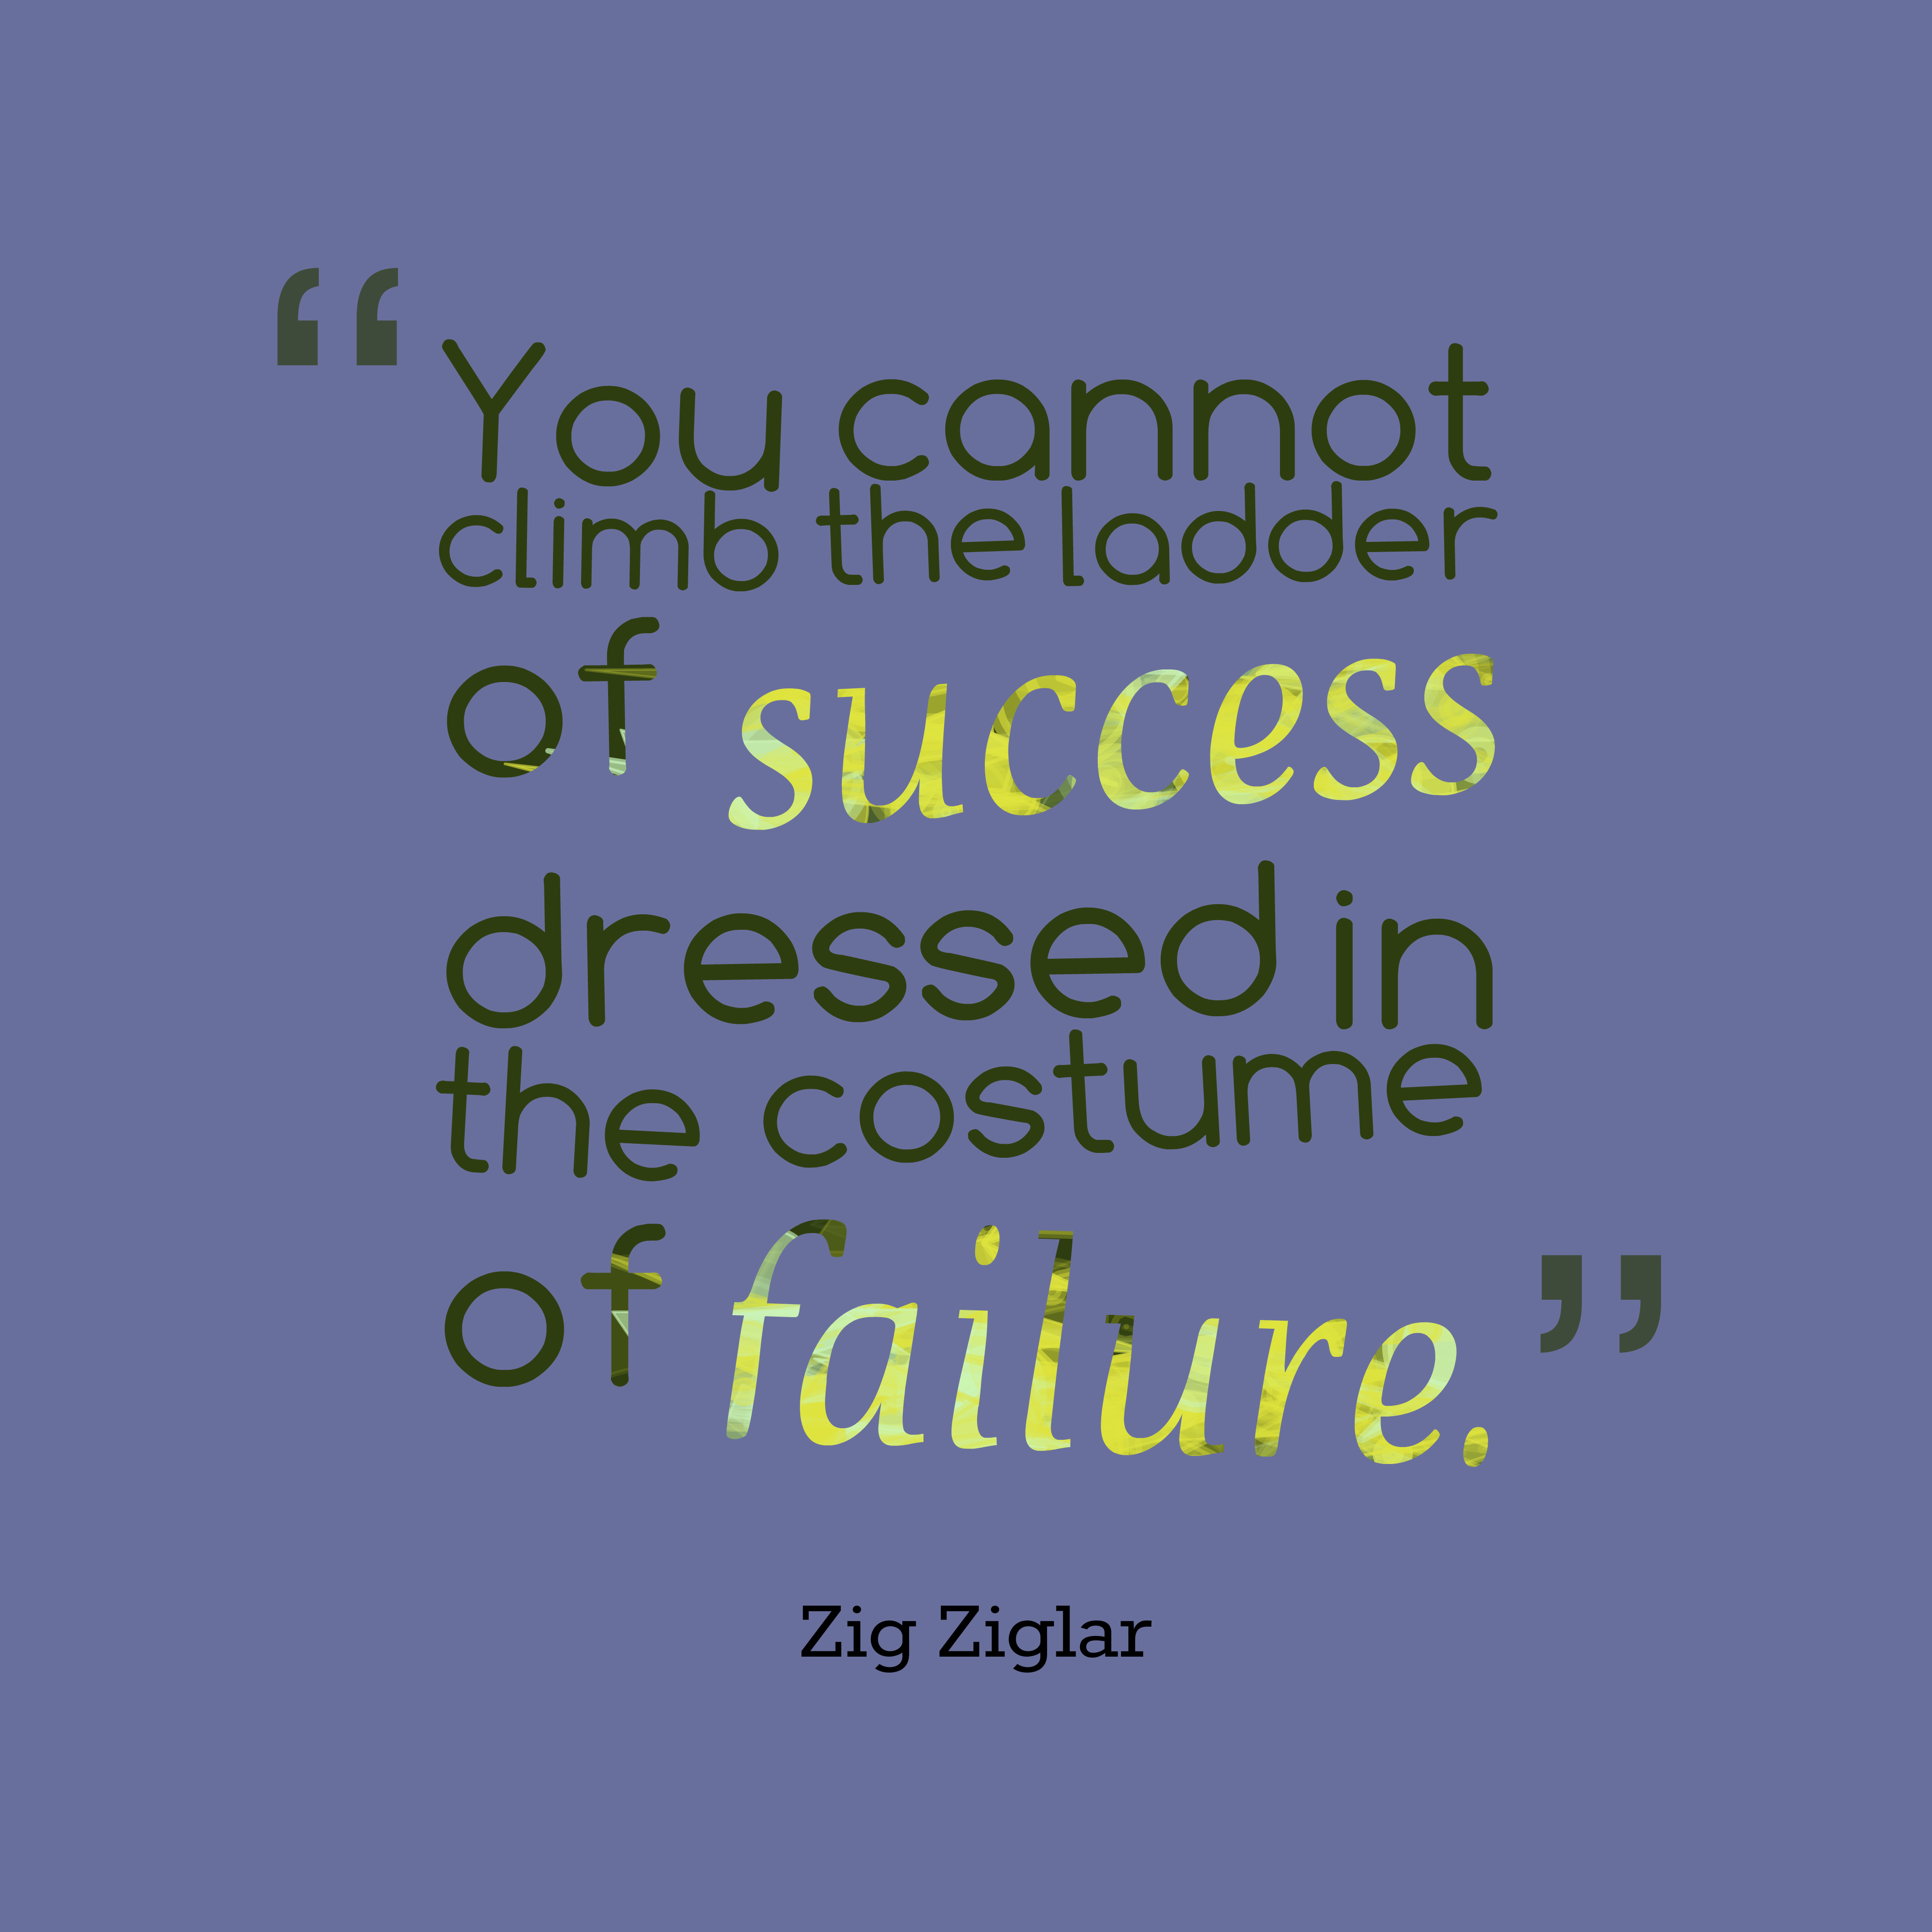 Quotes image of You cannot climb the ladder of success dressed in the costume of failure.